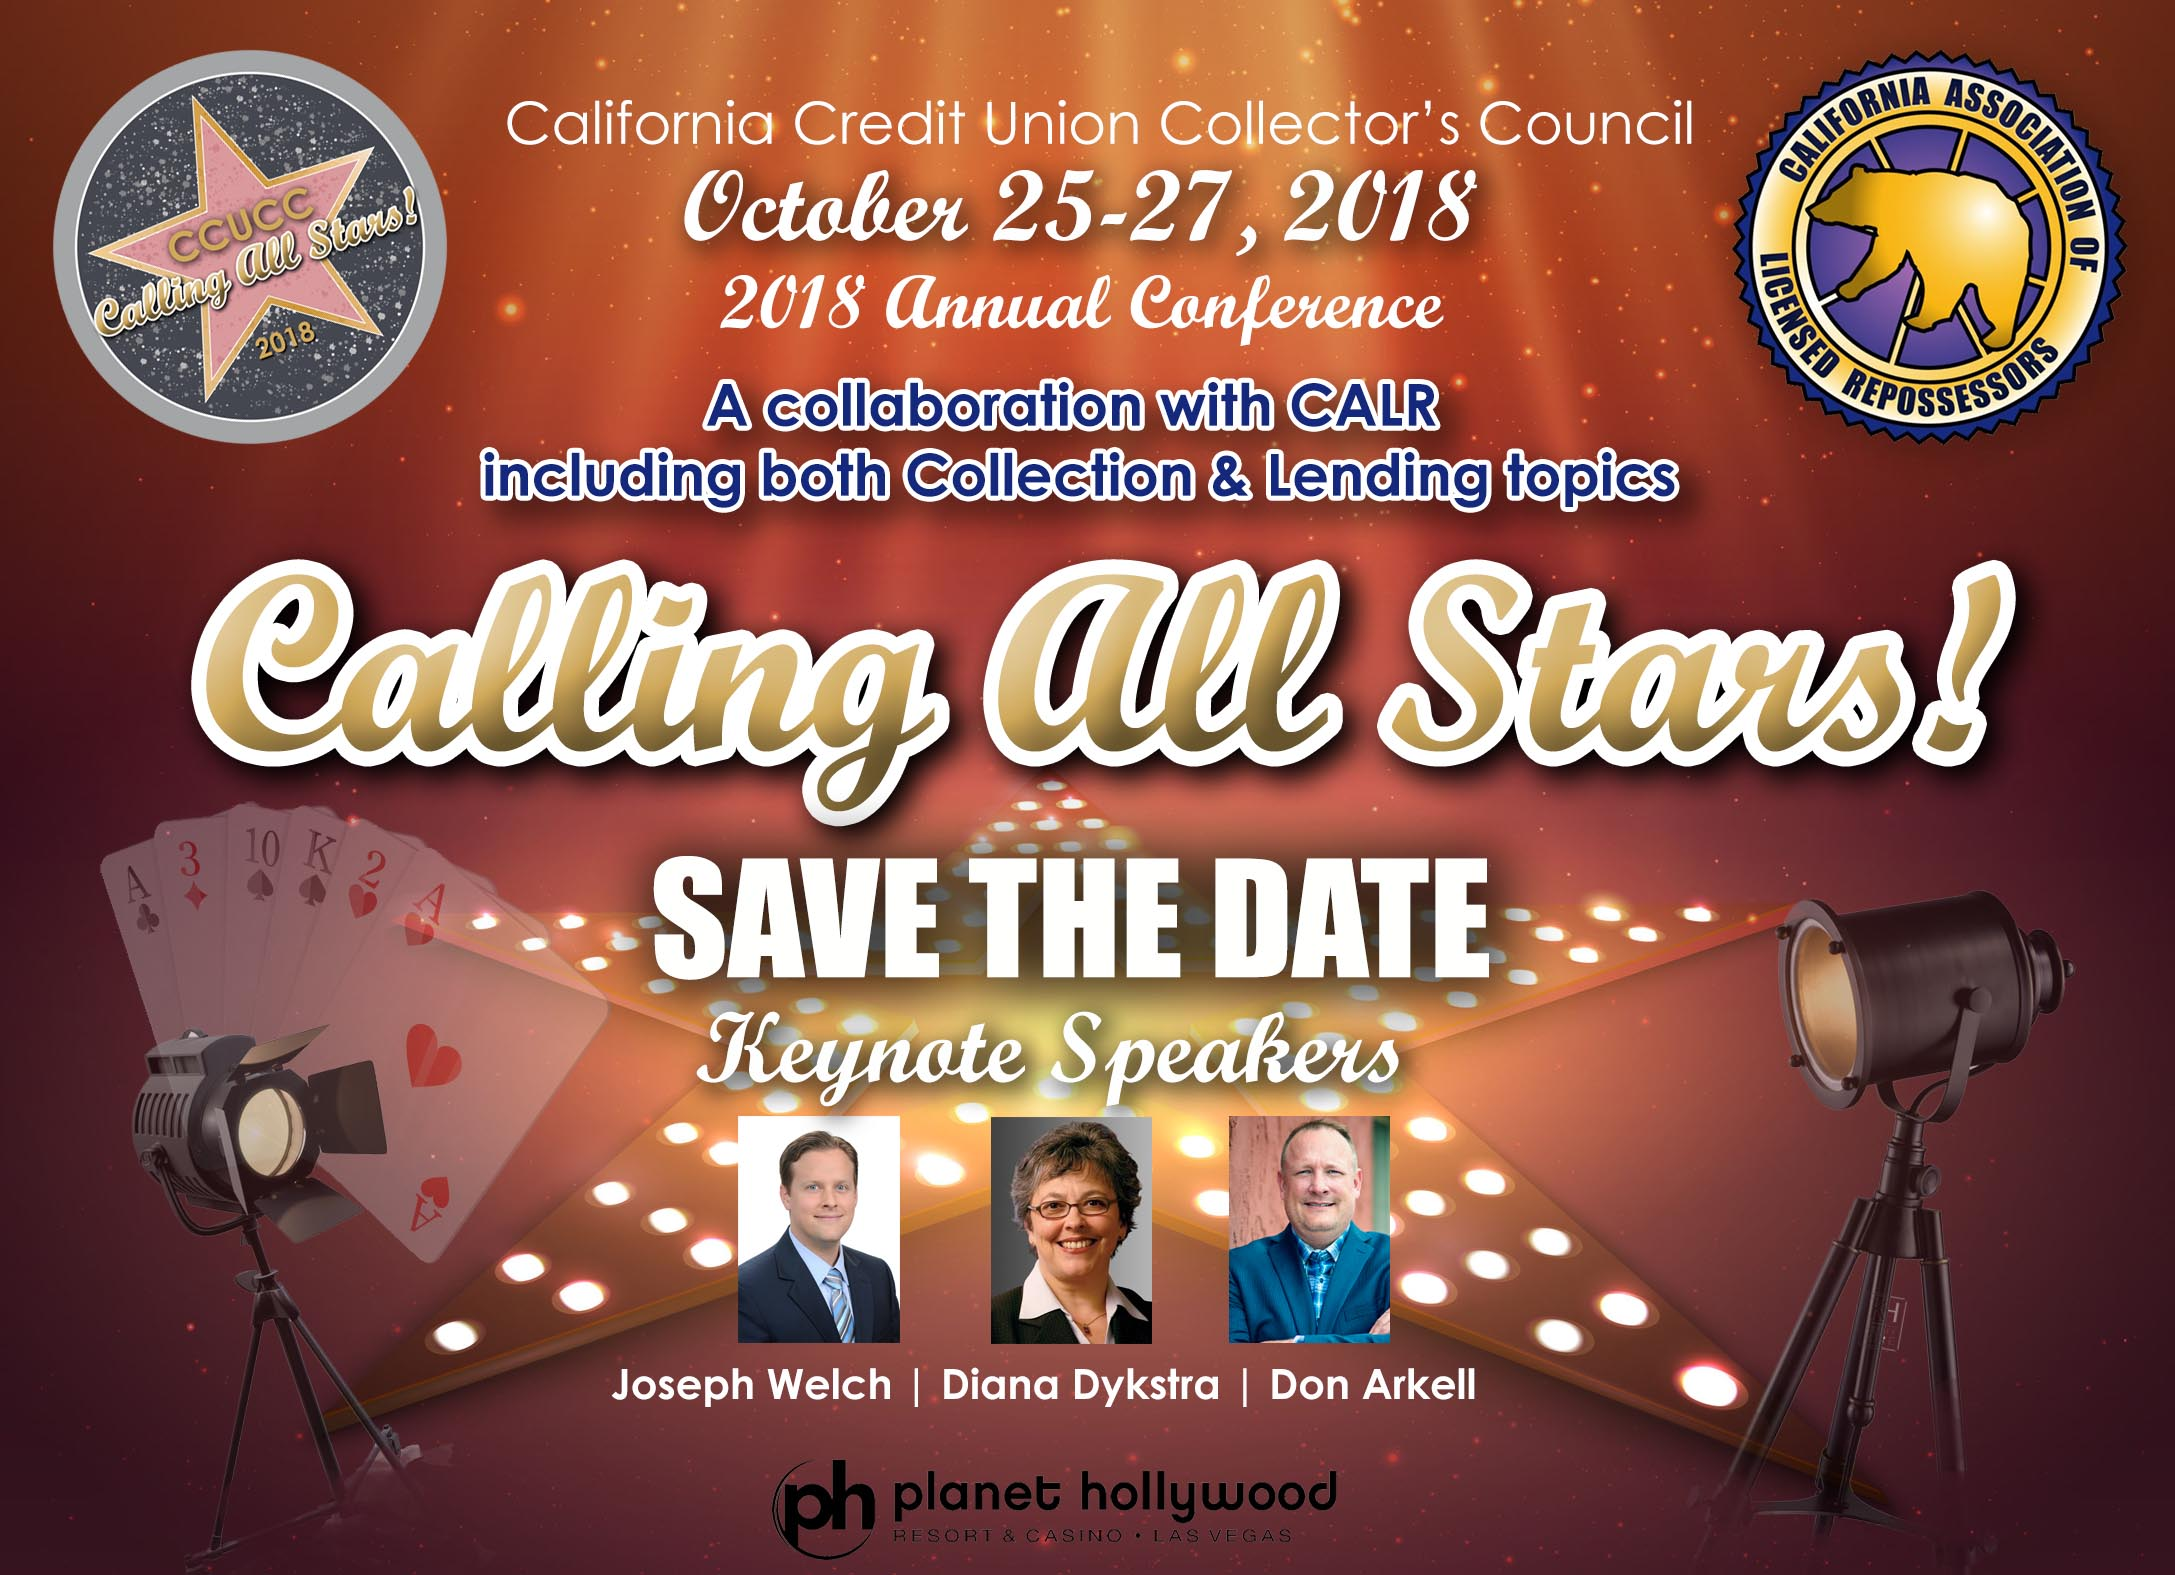 CCUCC 31st Annual Education Conference